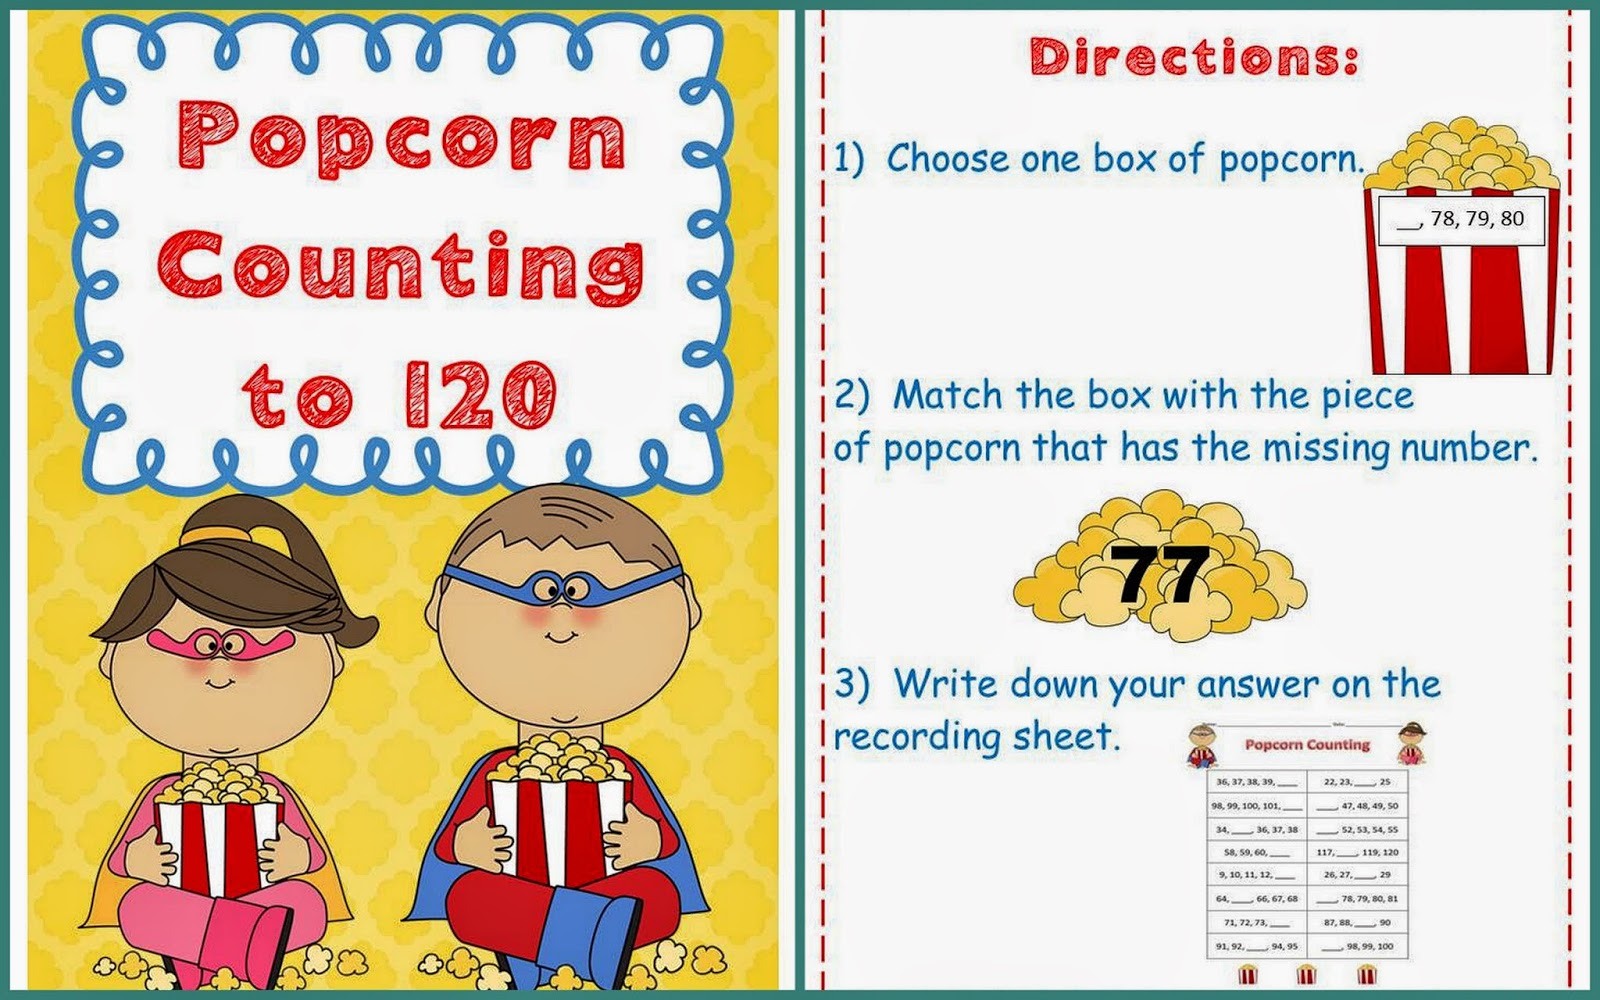 http://www.teacherspayteachers.com/Product/Popcorn-Counting-to-120-1040294